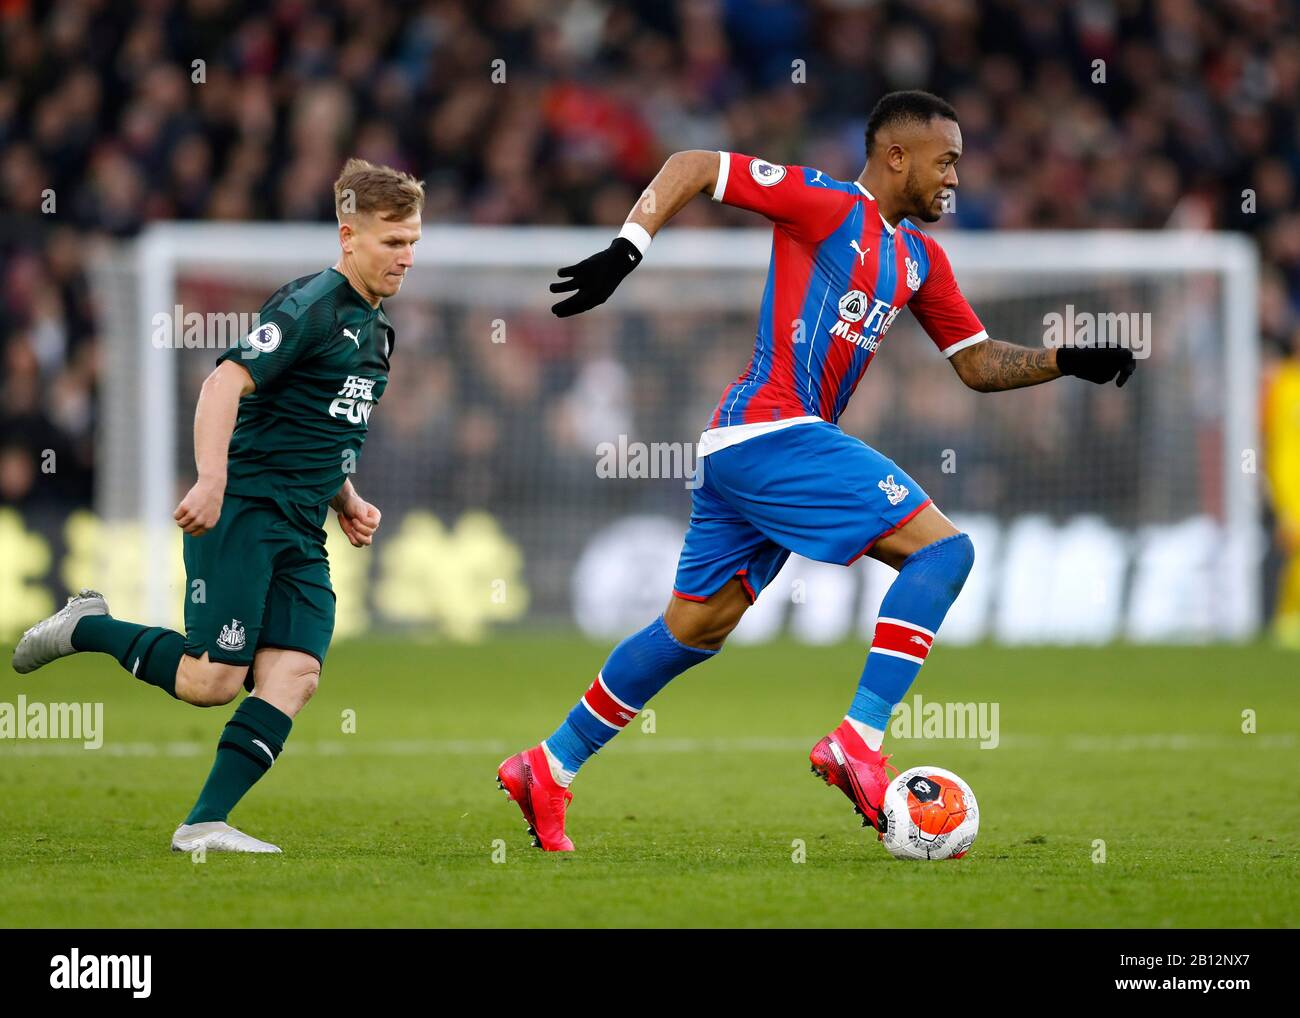 Selhurst Park, London, UK. 22nd Feb, 2020. English Premier League Football, Crystal Palace versus Newcastle United; Matt Ritchie of Newcastle United chases the run from Jordan Ayew of Crystal Palace - Strictly Editorial Use Only. No use with unauthorized audio, video, data, fixture lists, club/league logos or 'live' services. Online in-match use limited to 120 images, no video emulation. No use in betting, games or single club/league/player publications Credit: Action Plus Sports/Alamy Live News Stock Photo